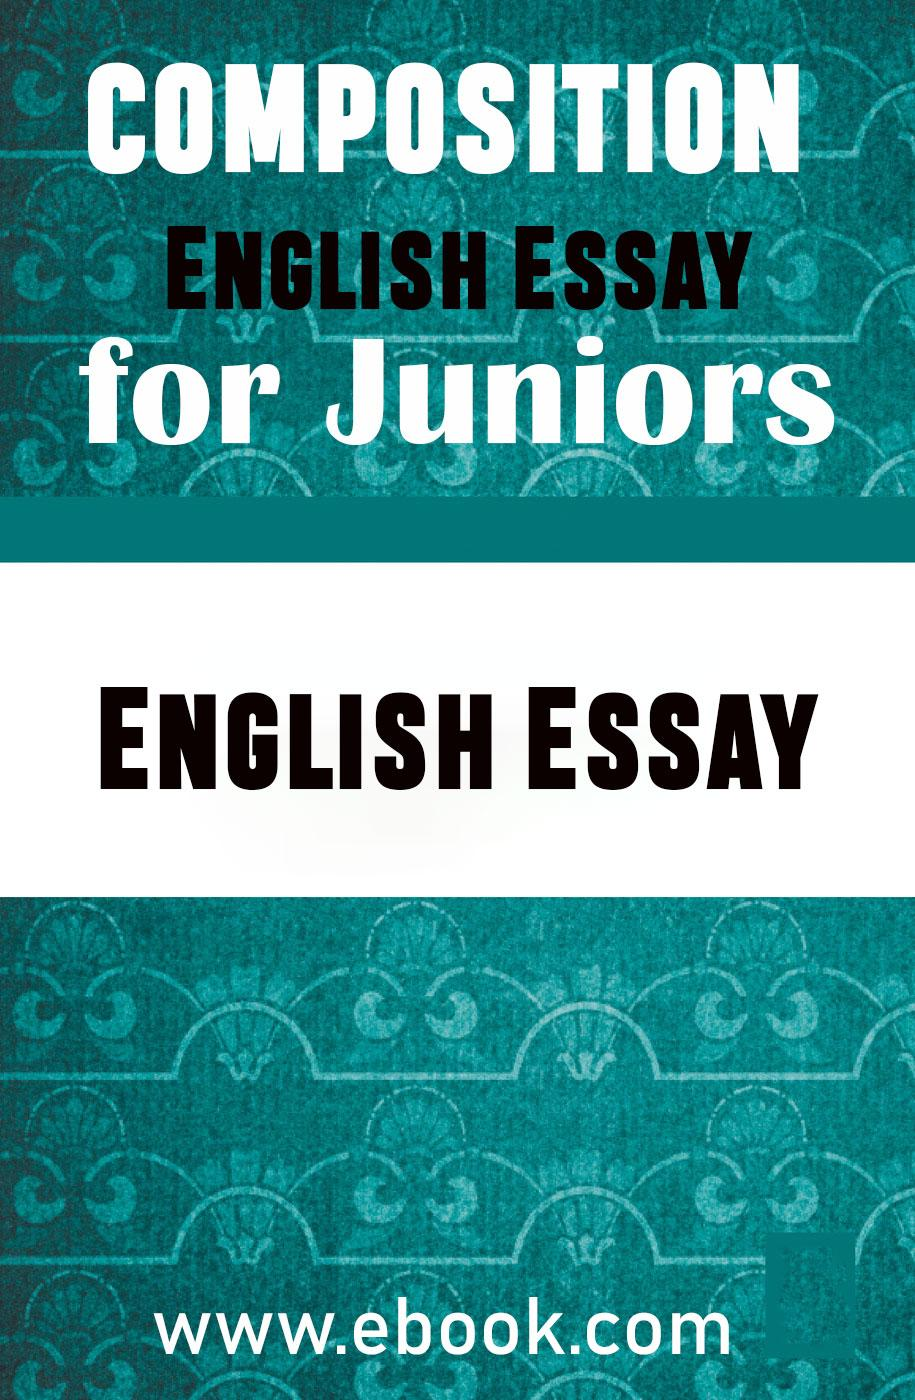 Thumbnail of English Essay composition for Juniors